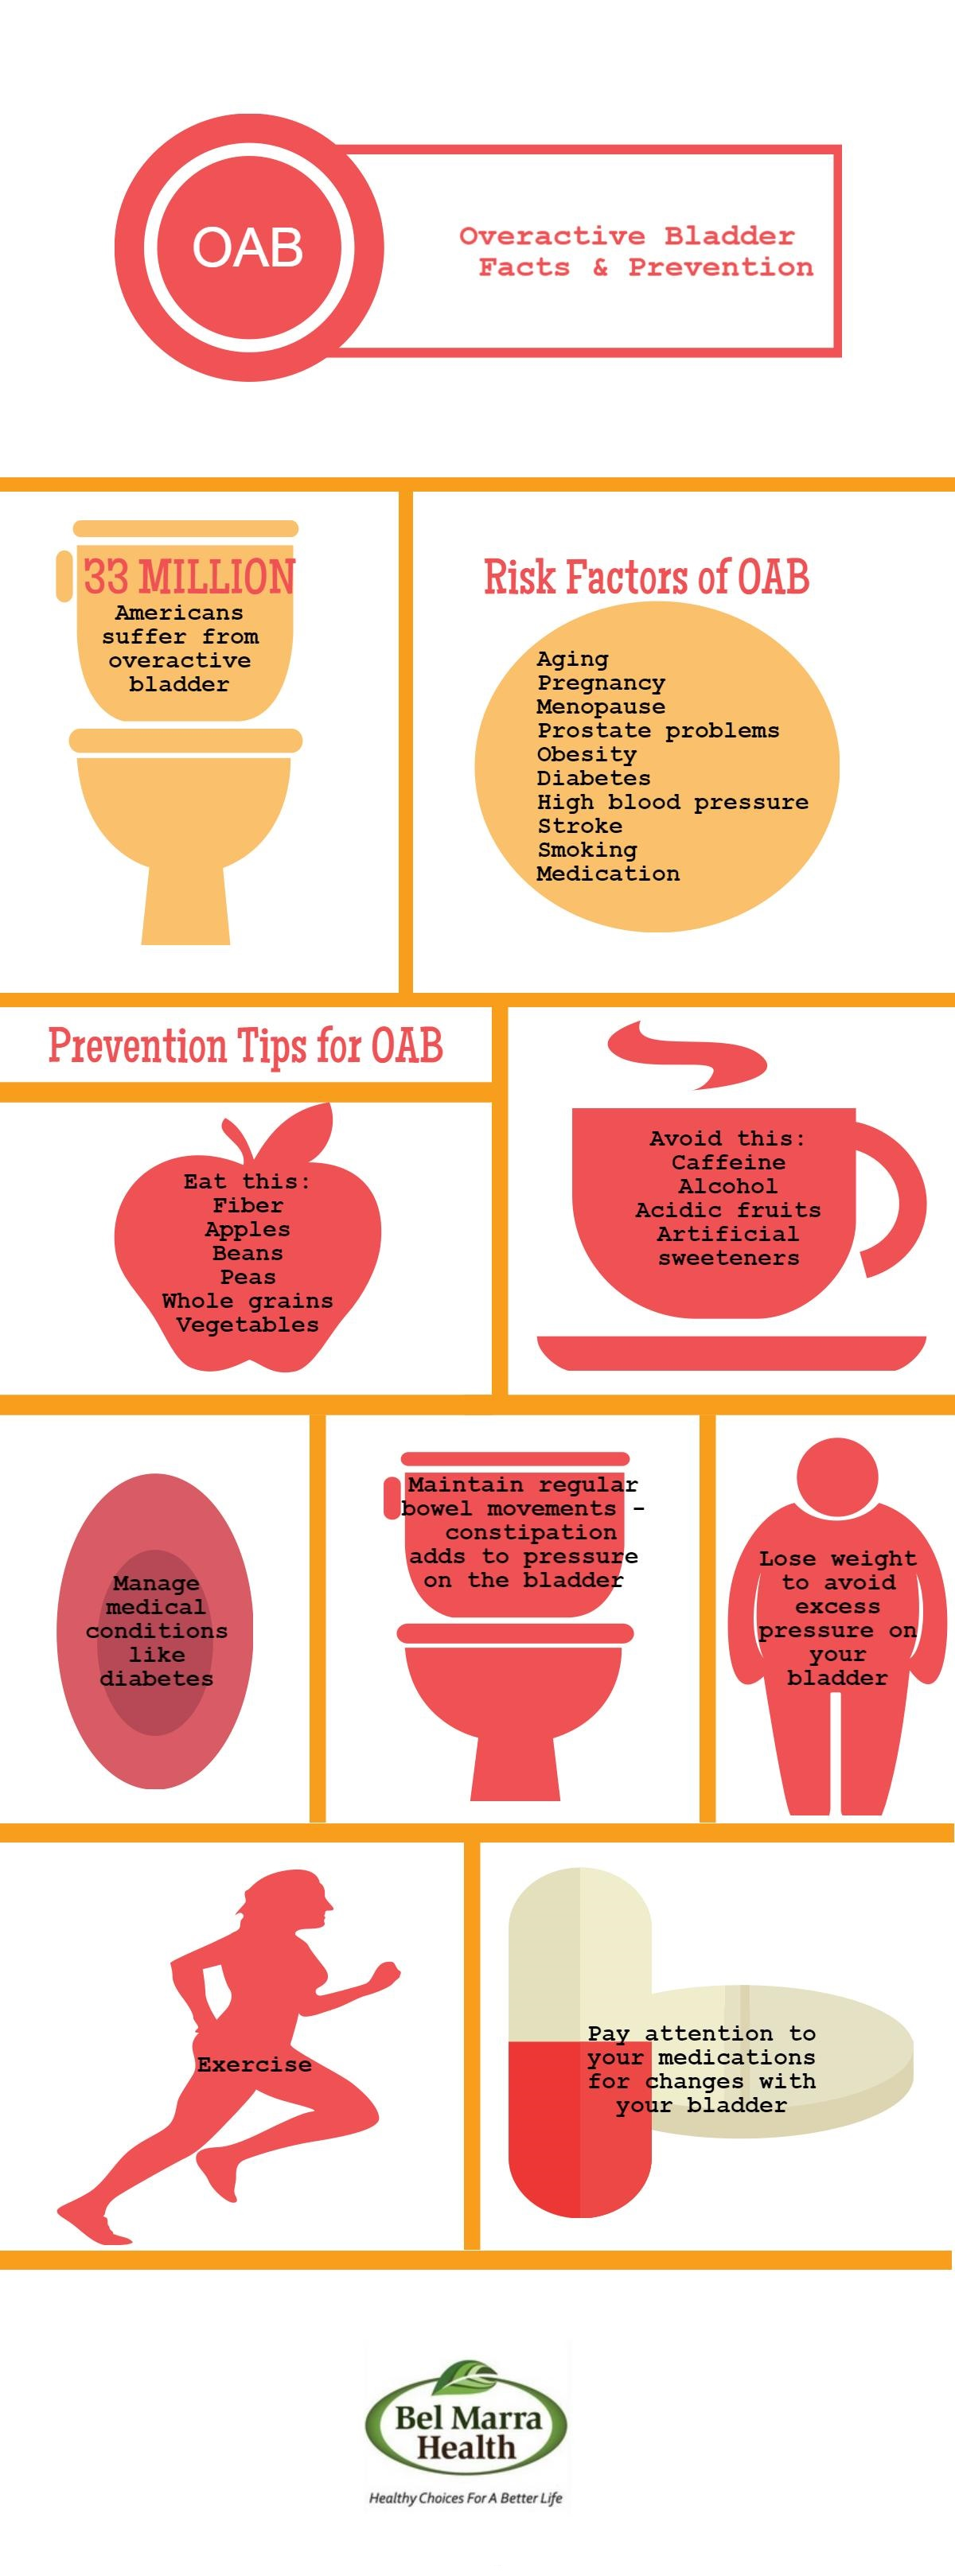 Prevent an Overactive Bladder recommendations